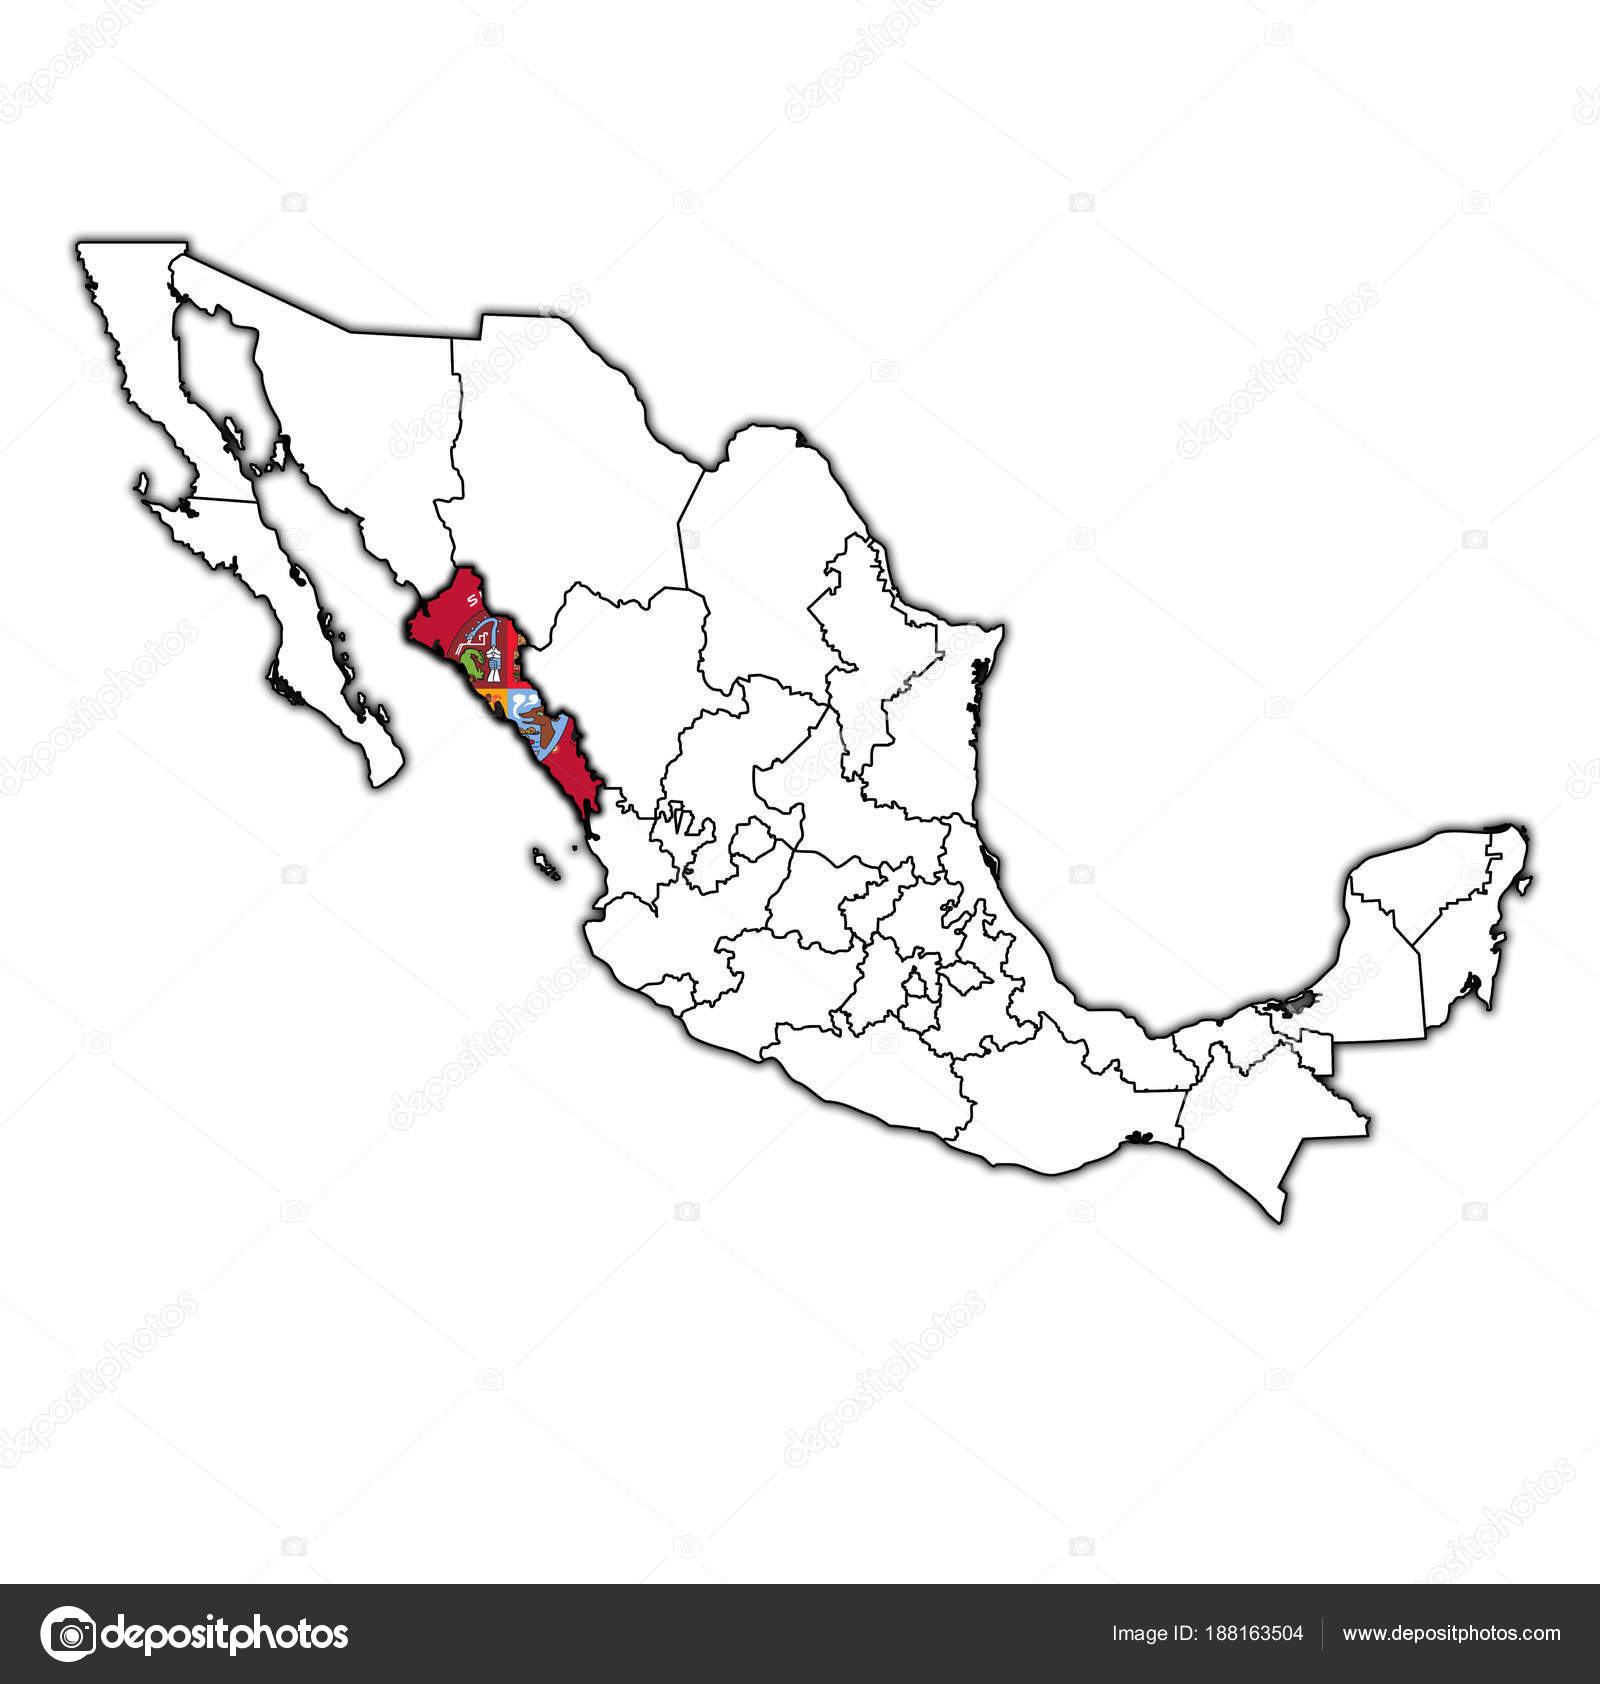 sinaloa on administration map of mexico stock photo